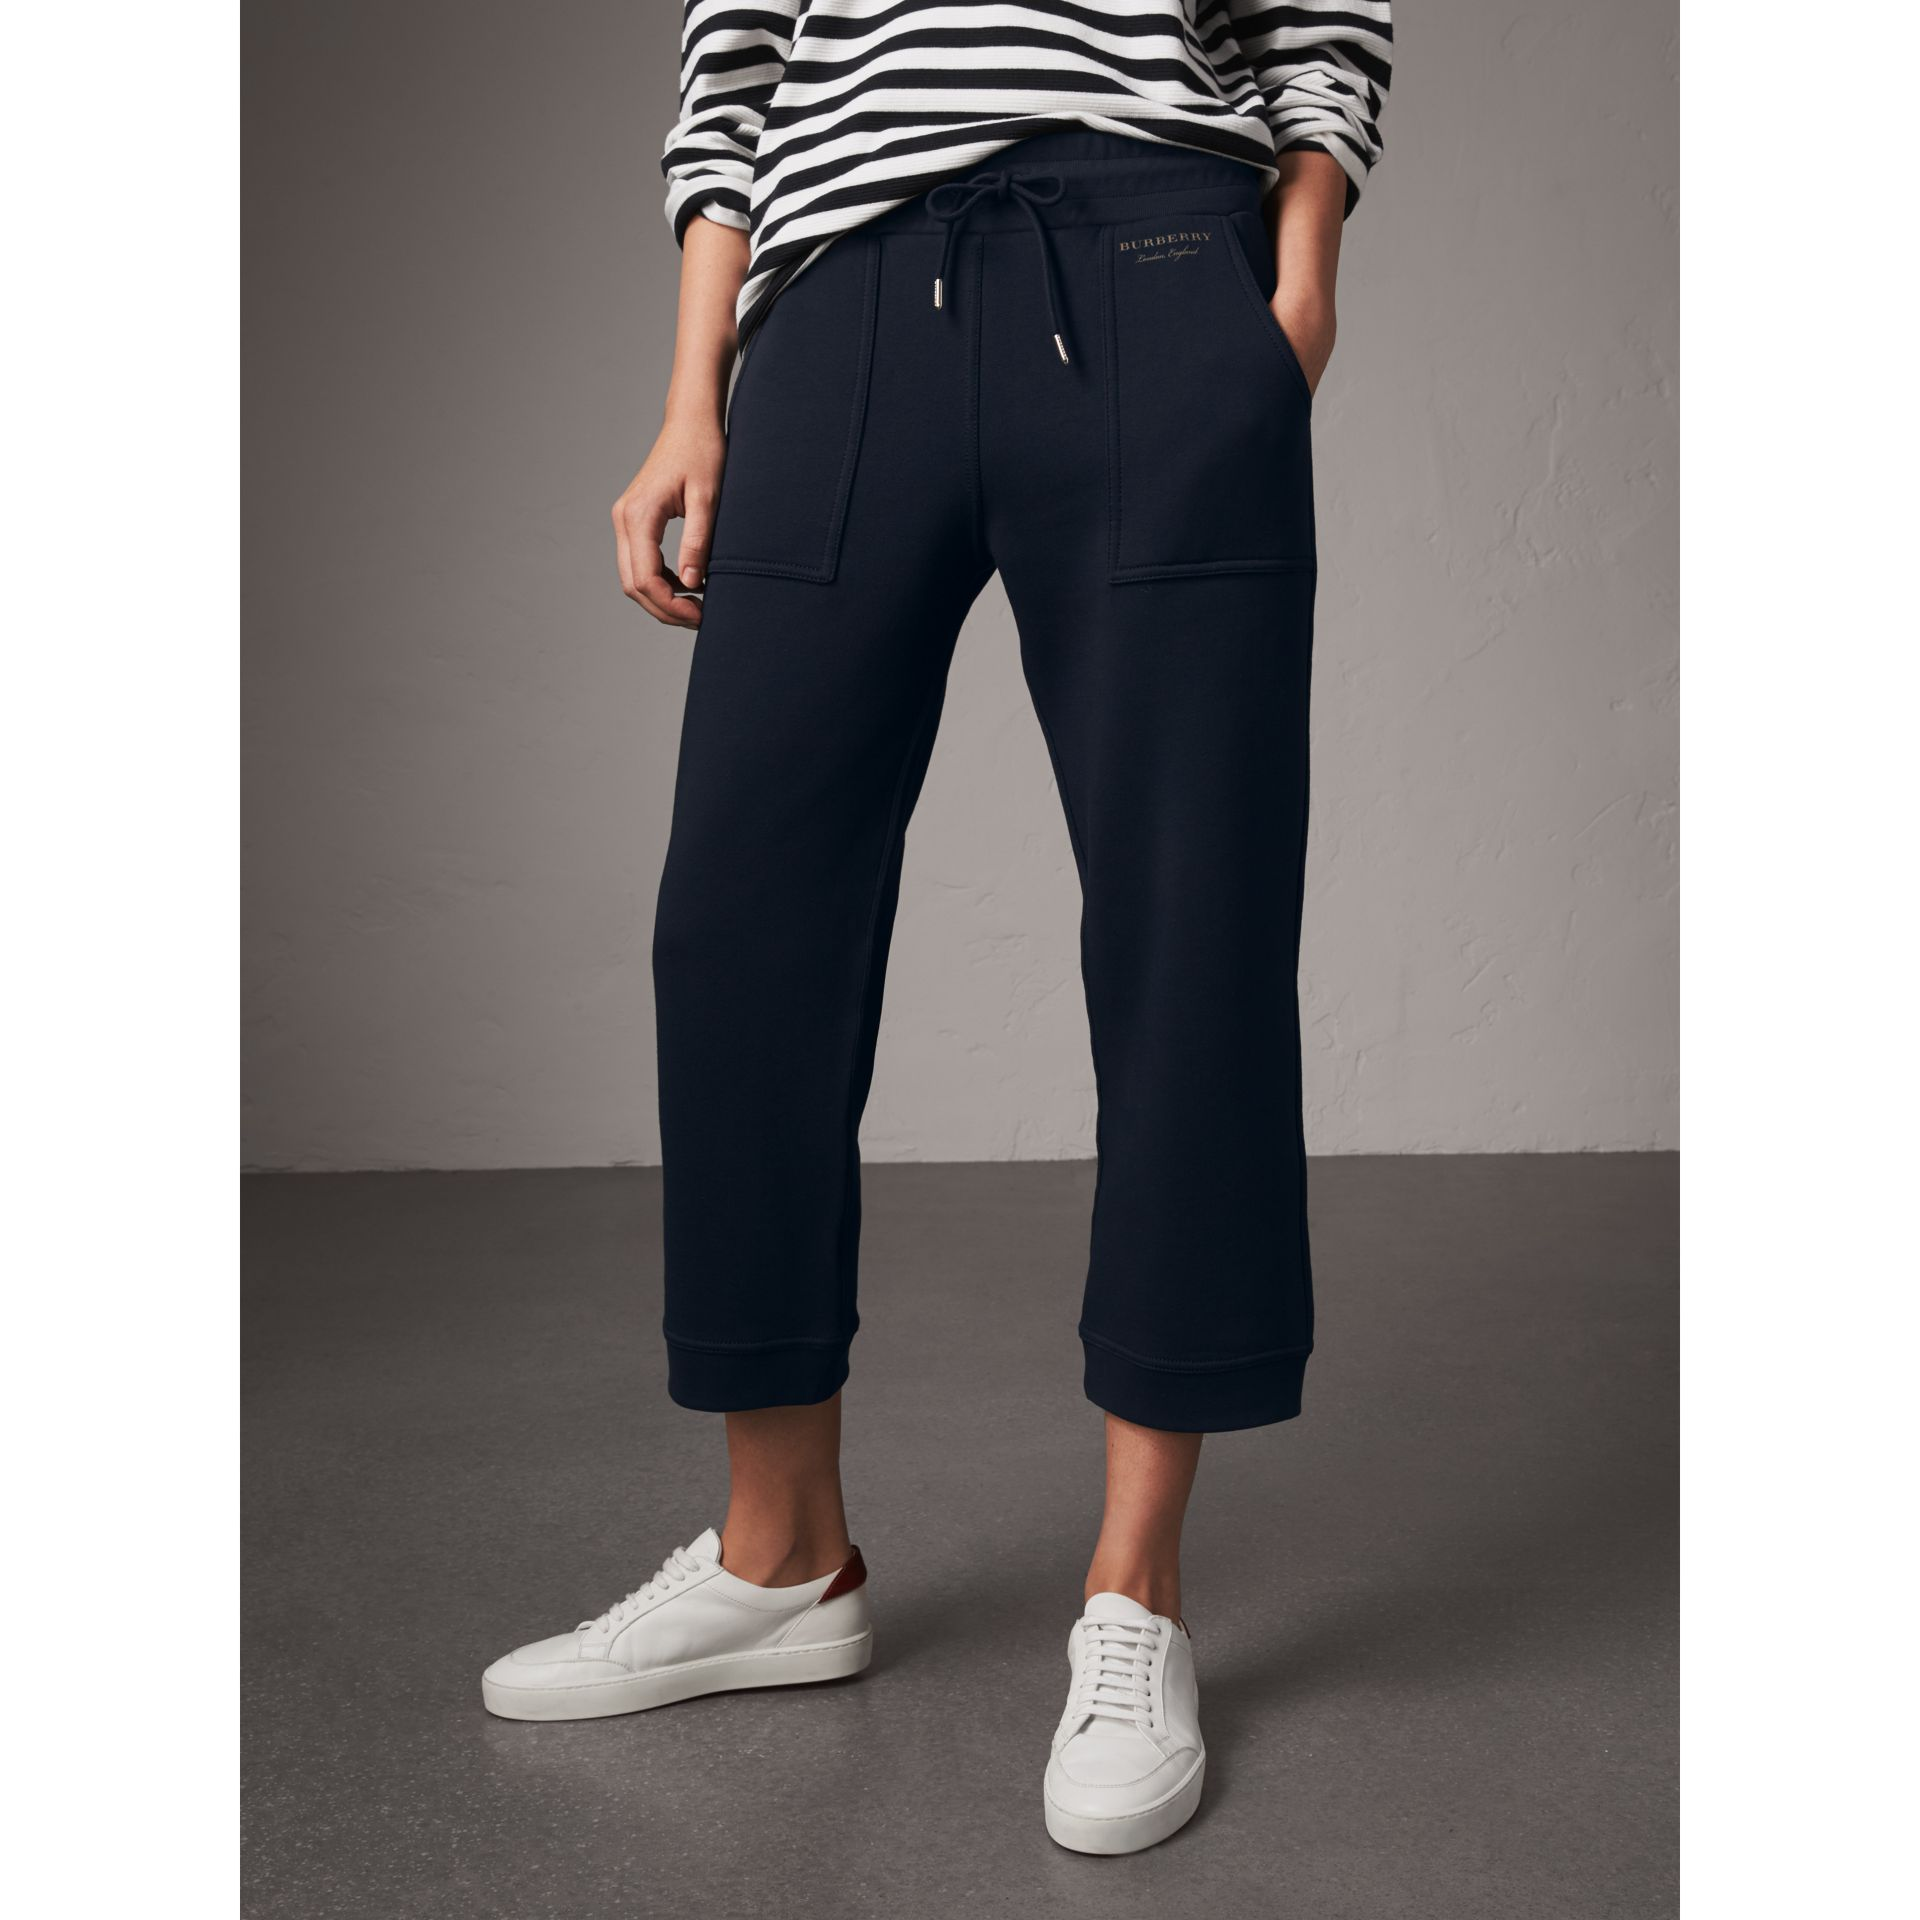 Pantalon de survêtement 7/8 en jersey (Marine) - Femme | Burberry - photo de la galerie 5